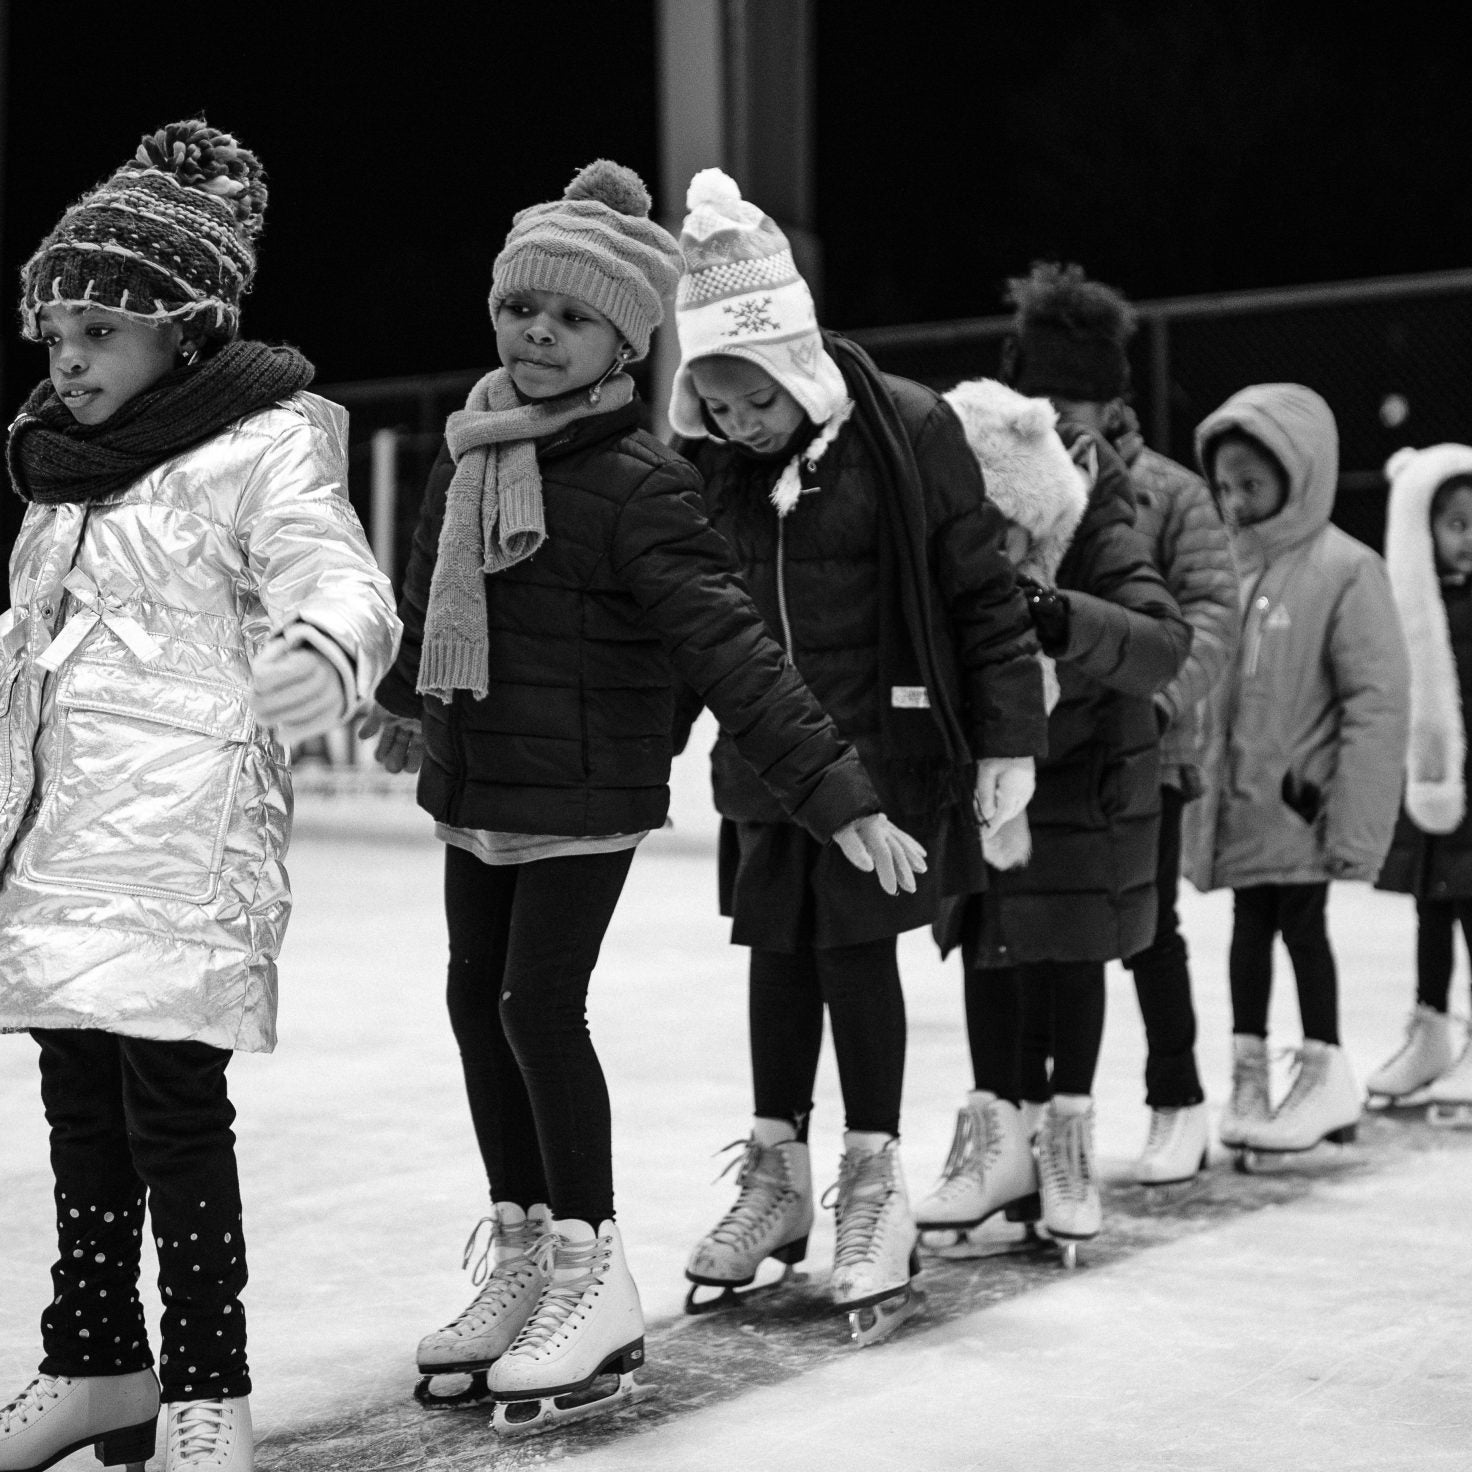 Meet The Artist Capturing The Beauty Of Young Black Ice Skaters